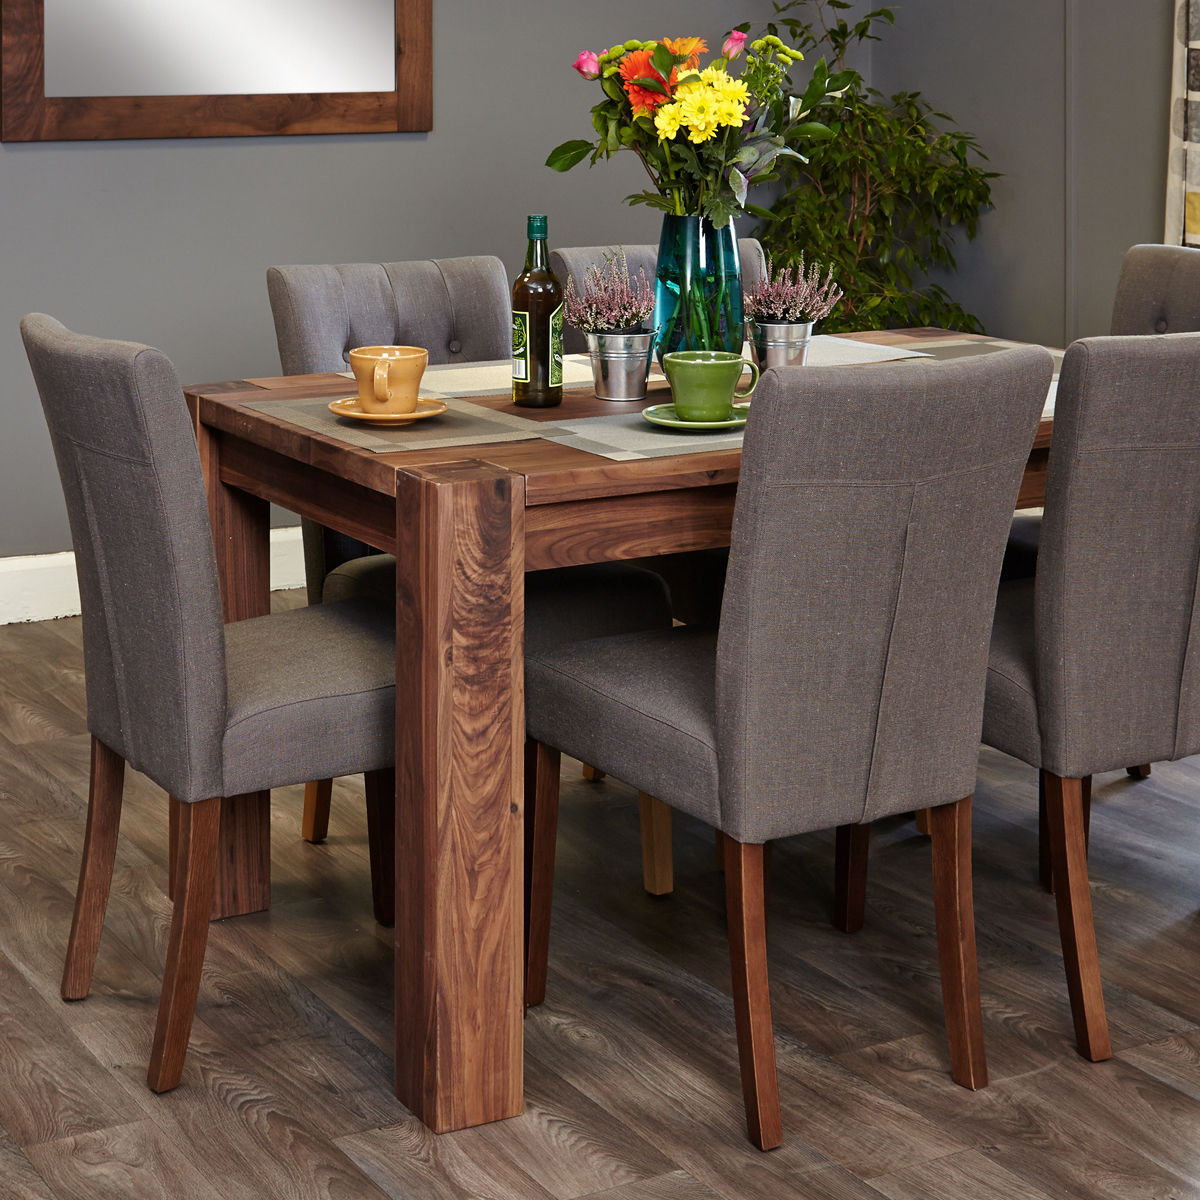 Shiro Walnut 6 Seat Table And 6 Grey Linen Chairs Was 163